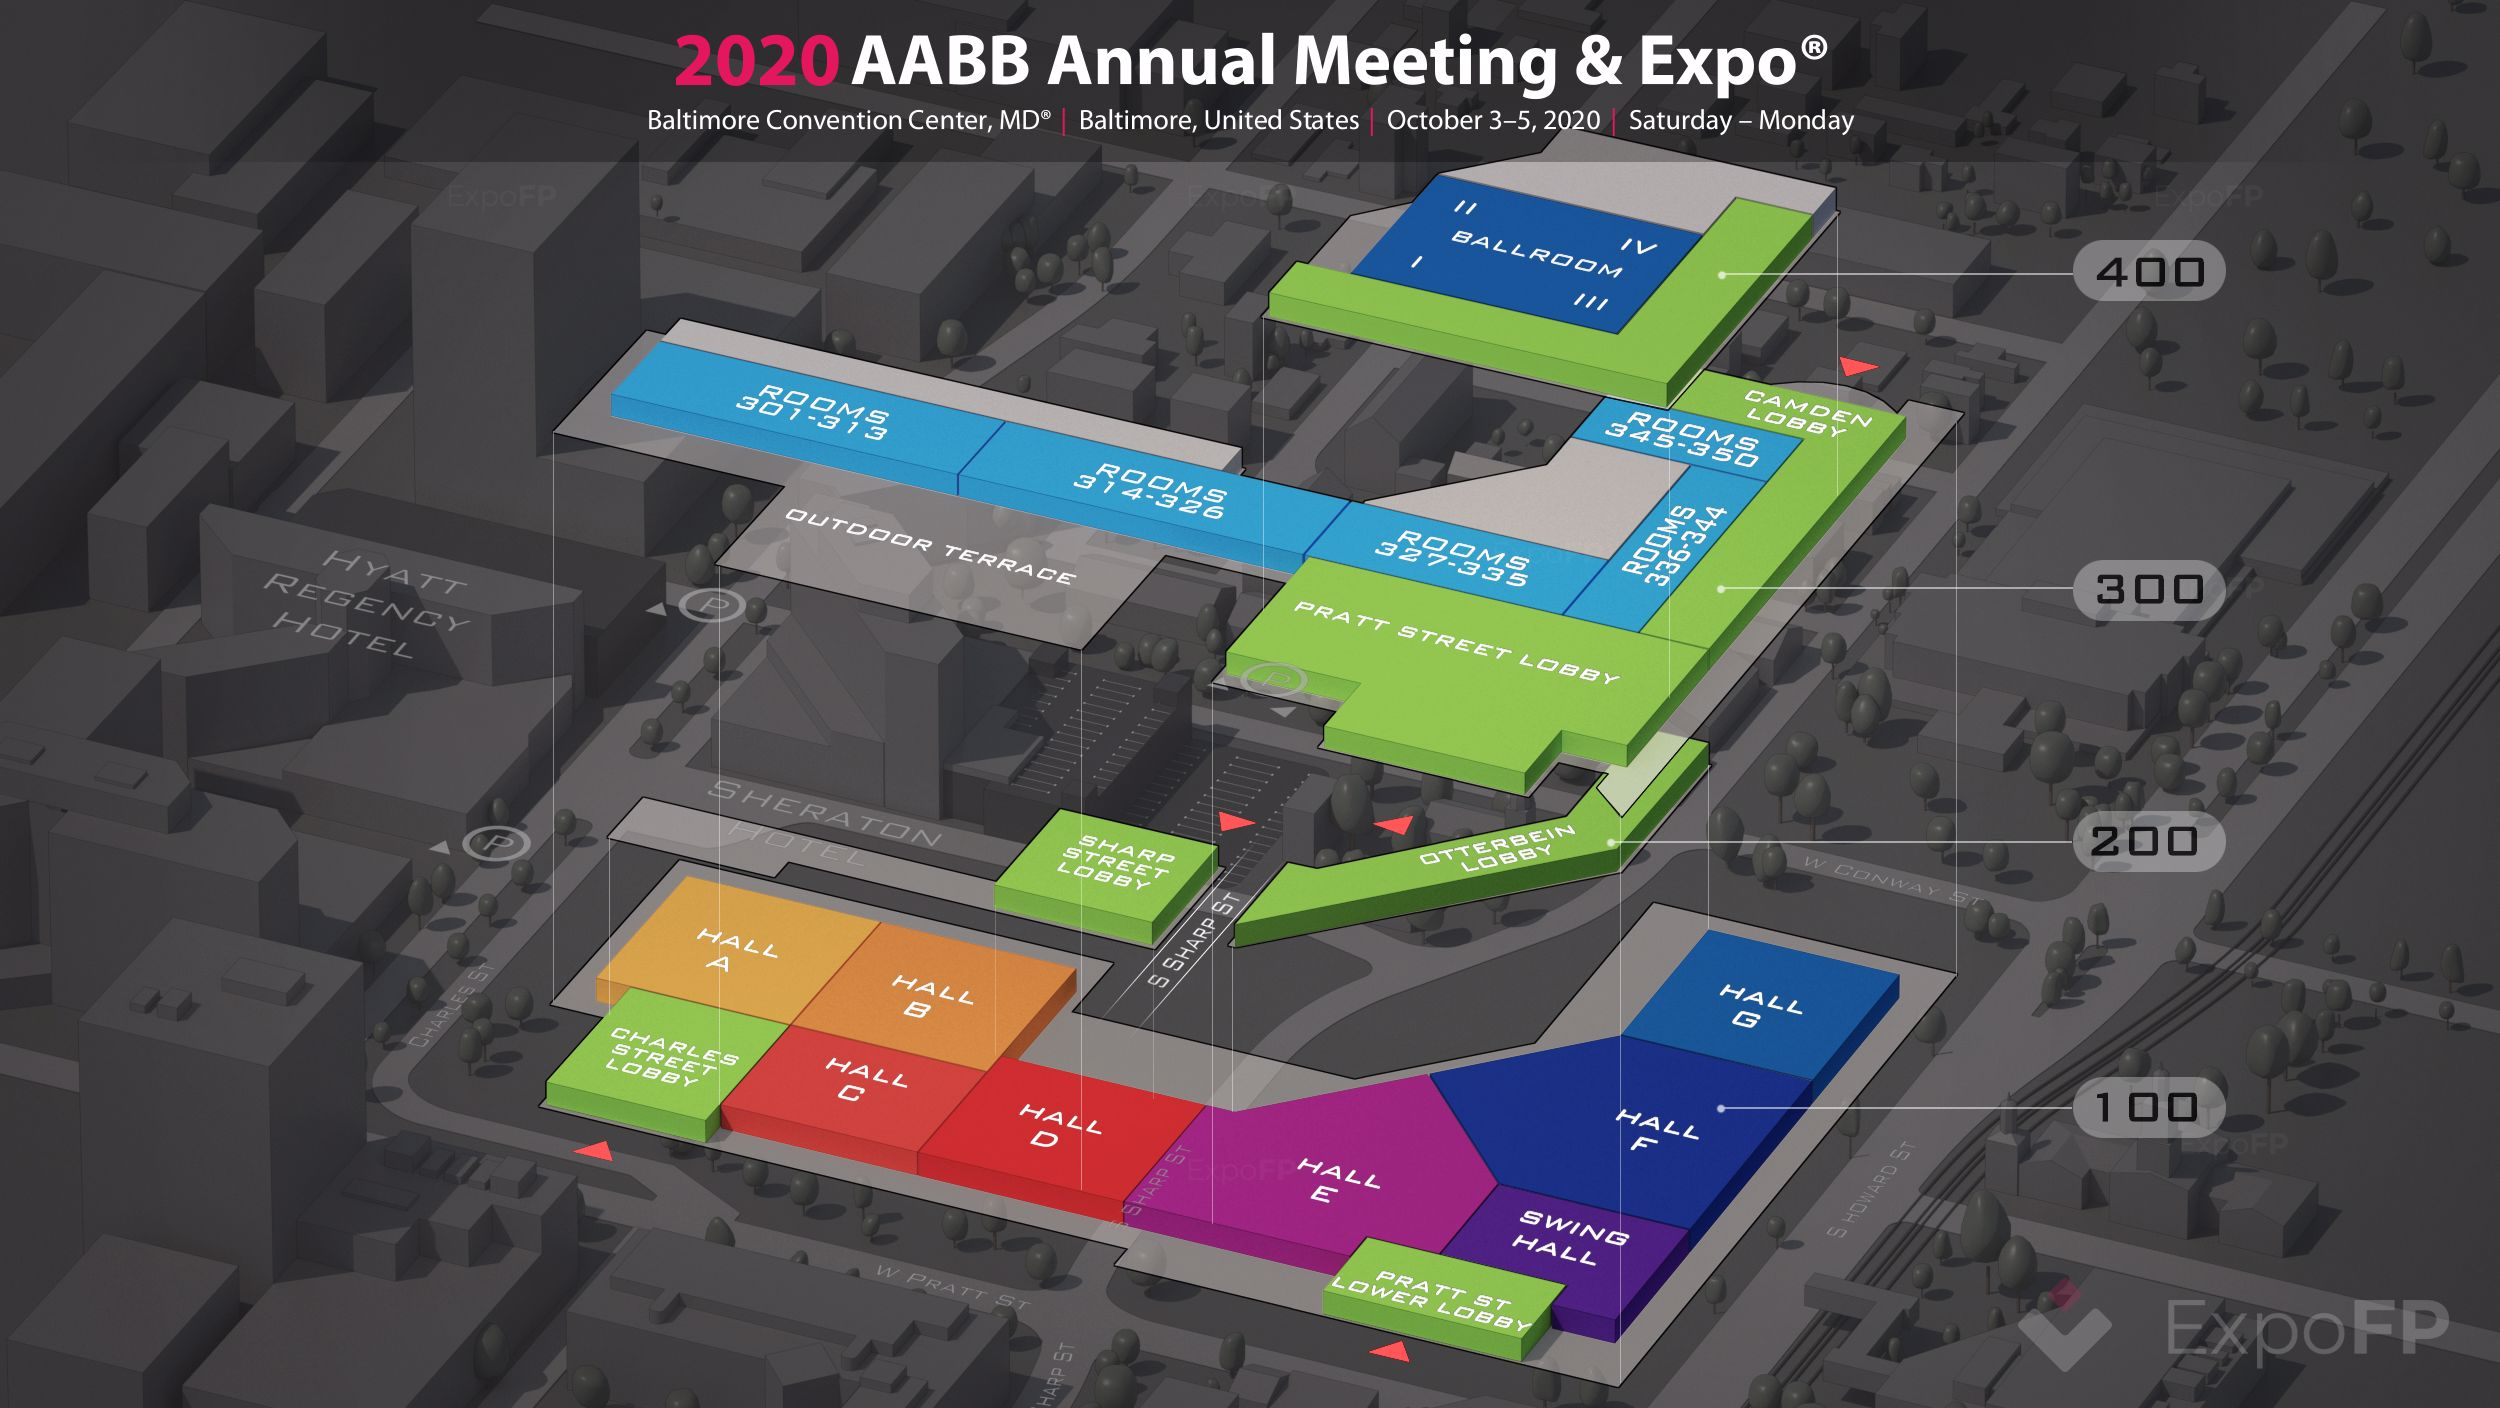 Aabb Annual Meeting Expo 2020 In Baltimore Convention Center Md